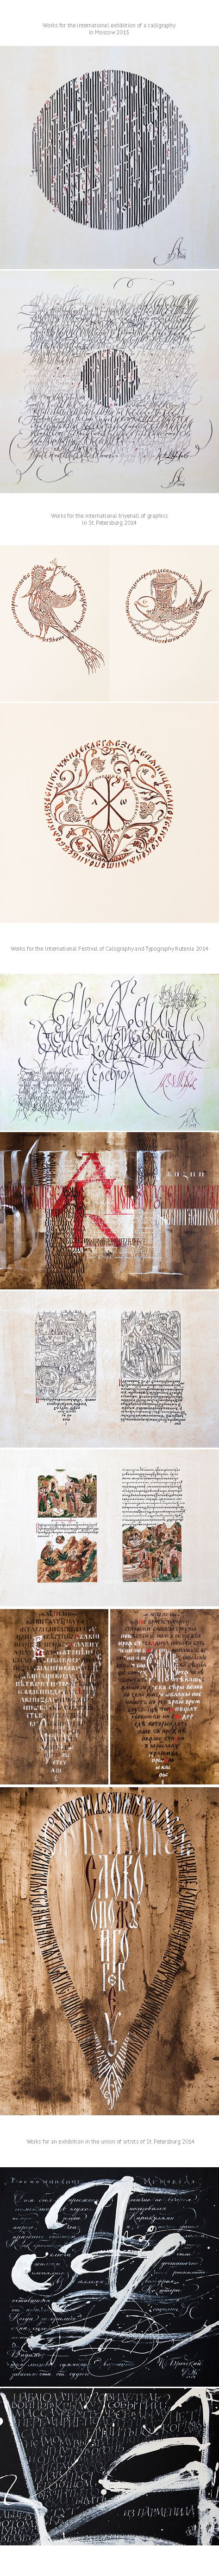 Calligraphy for exhibitions on Behance